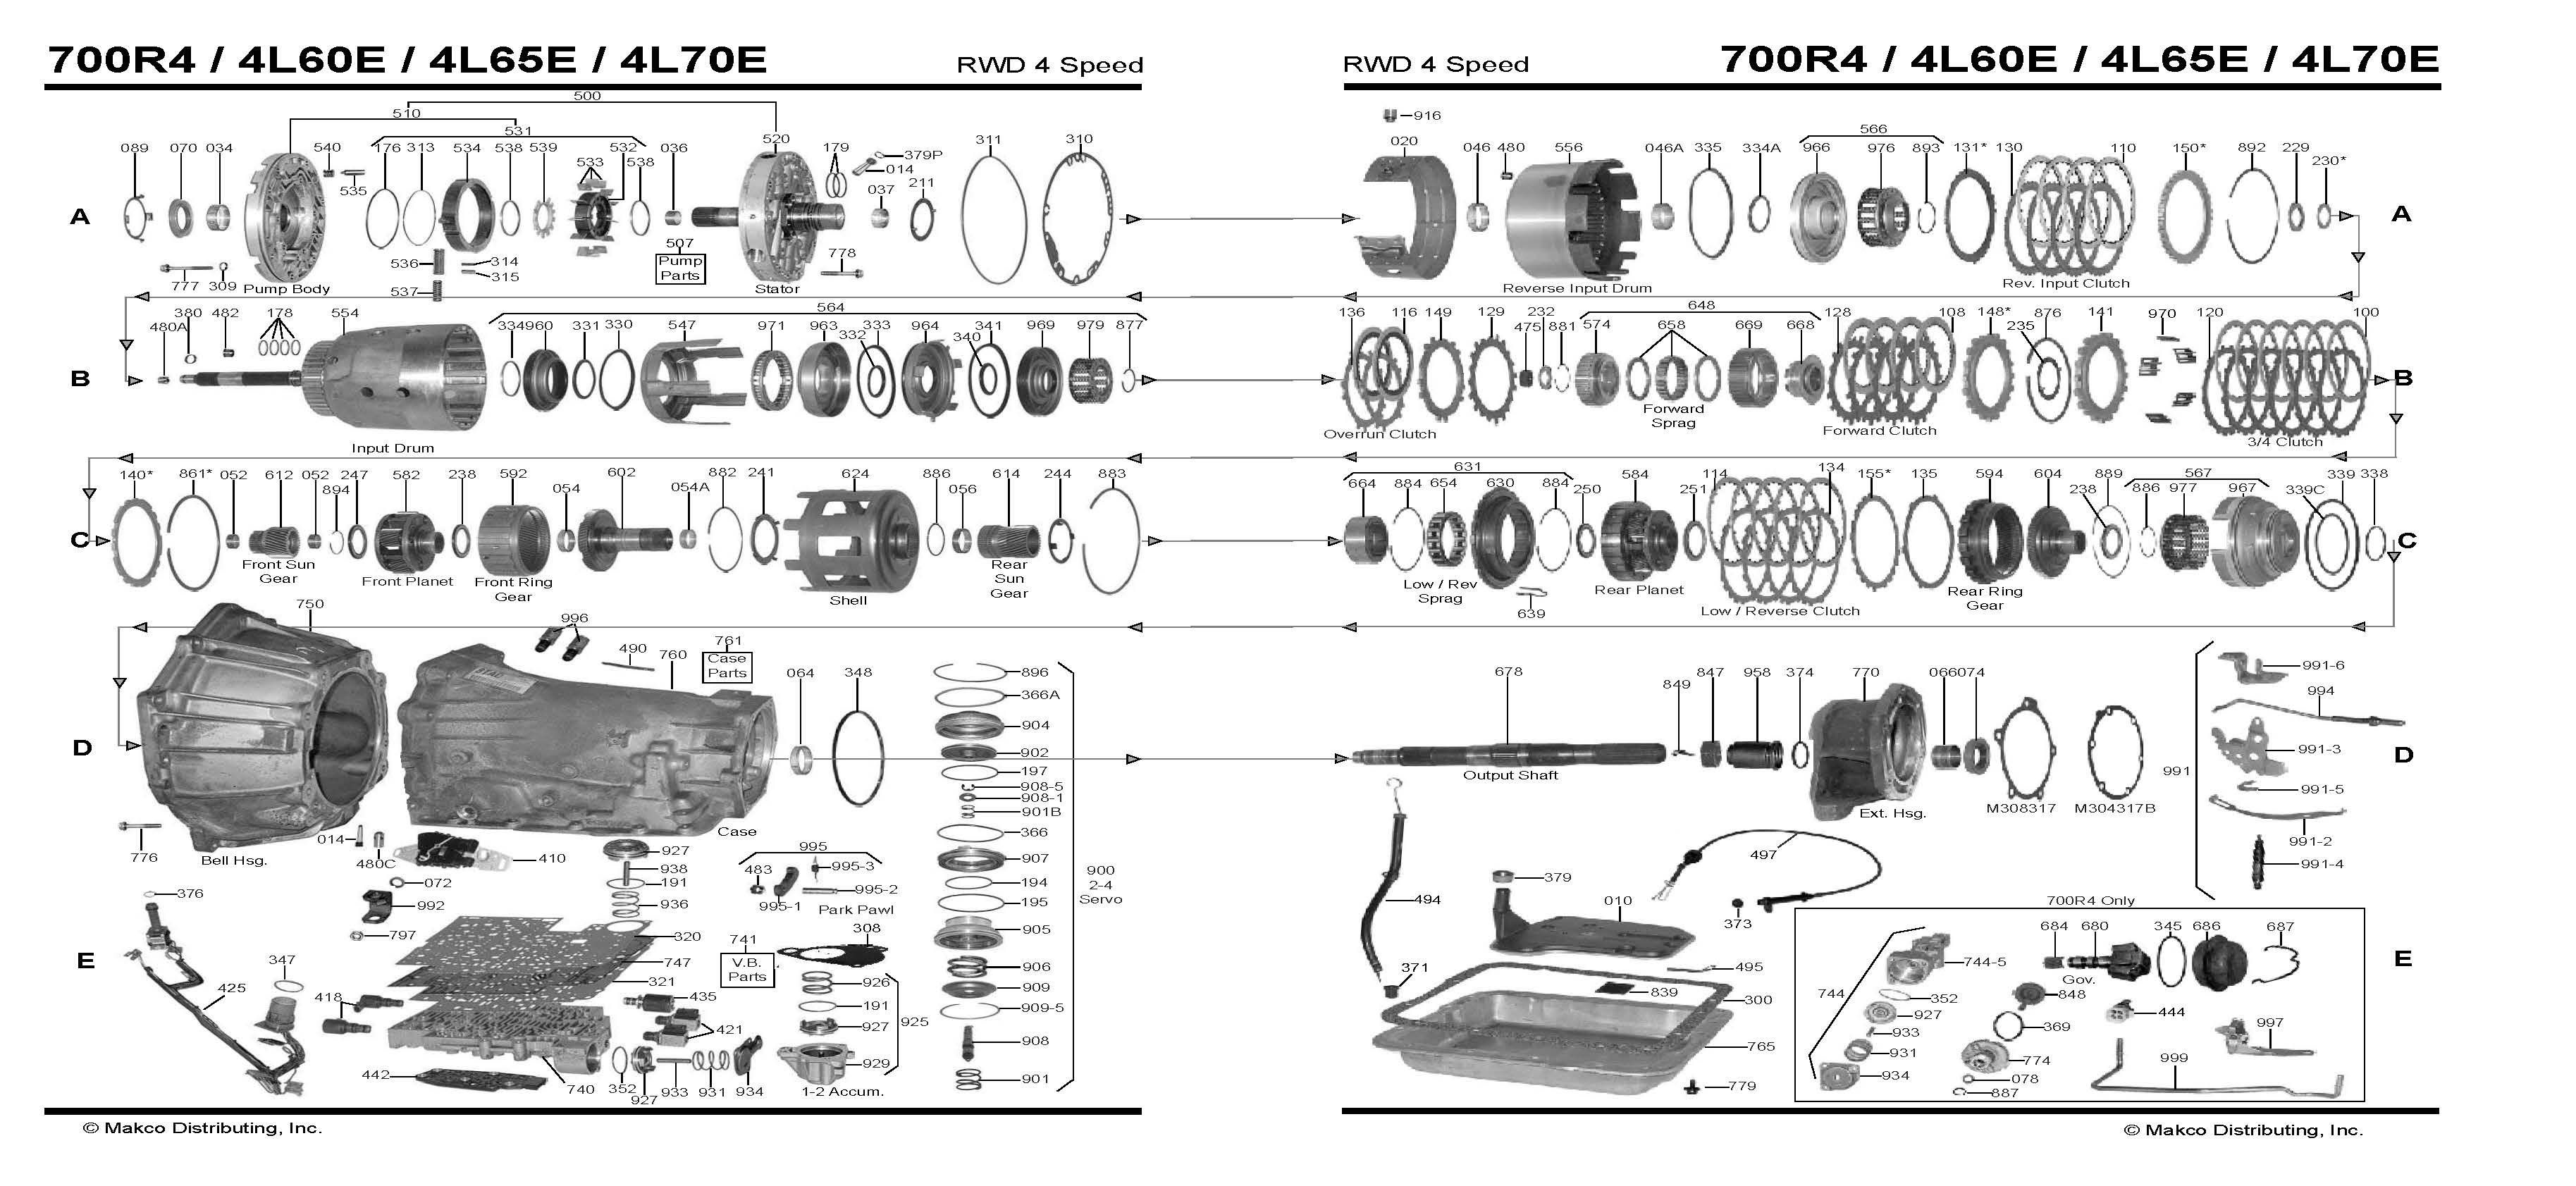 4l60e transmission rebuild manual pdf